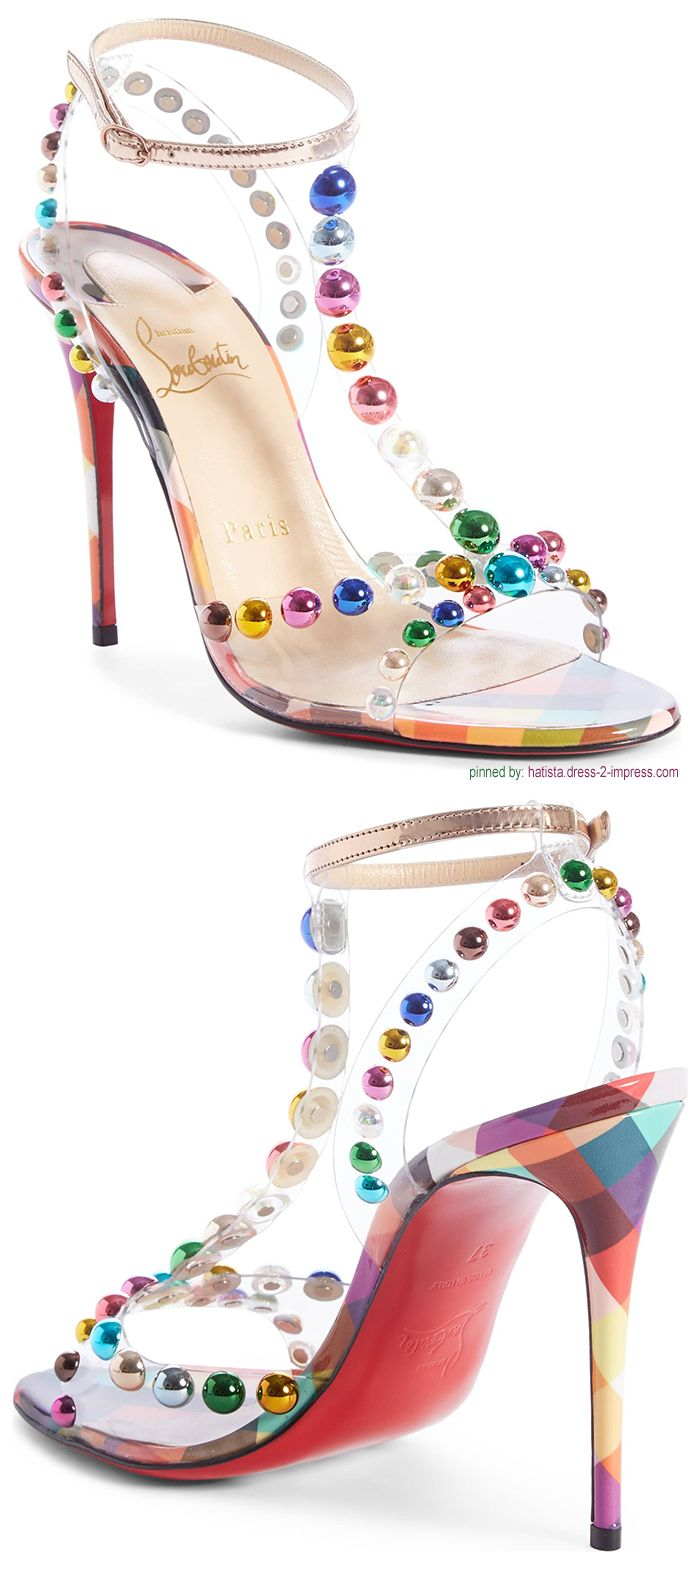 f18988f4af5 Faridaravie Bead Sandal. New Season Spring Summer 2019 Christian Louboutin  Shoes